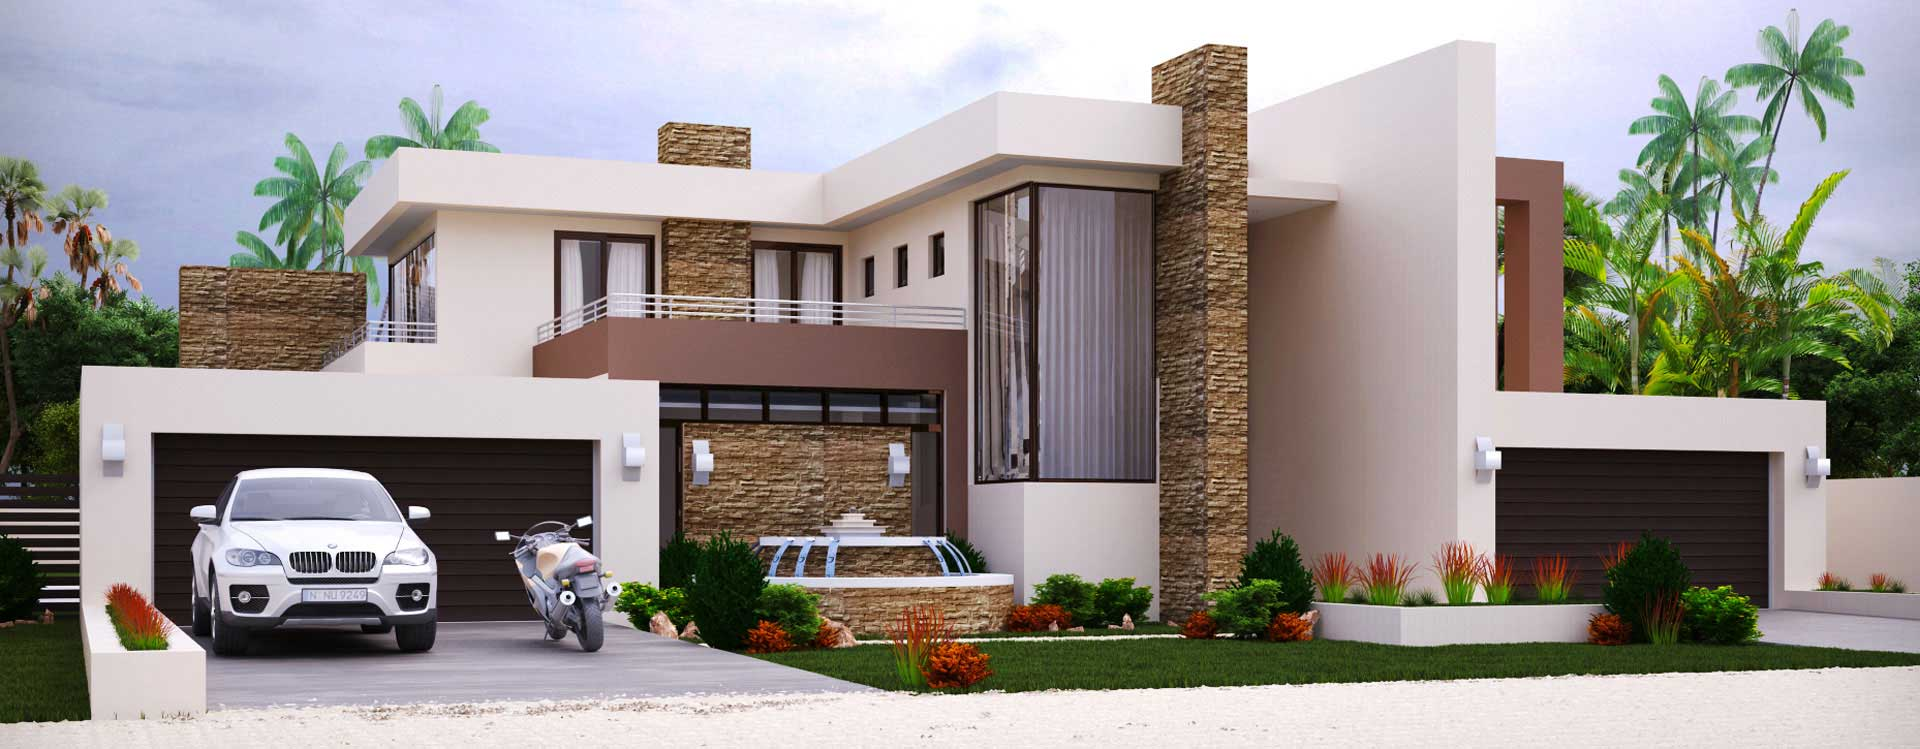 Modern home design with 4 bedrooms house plans for Modern house plans 2015